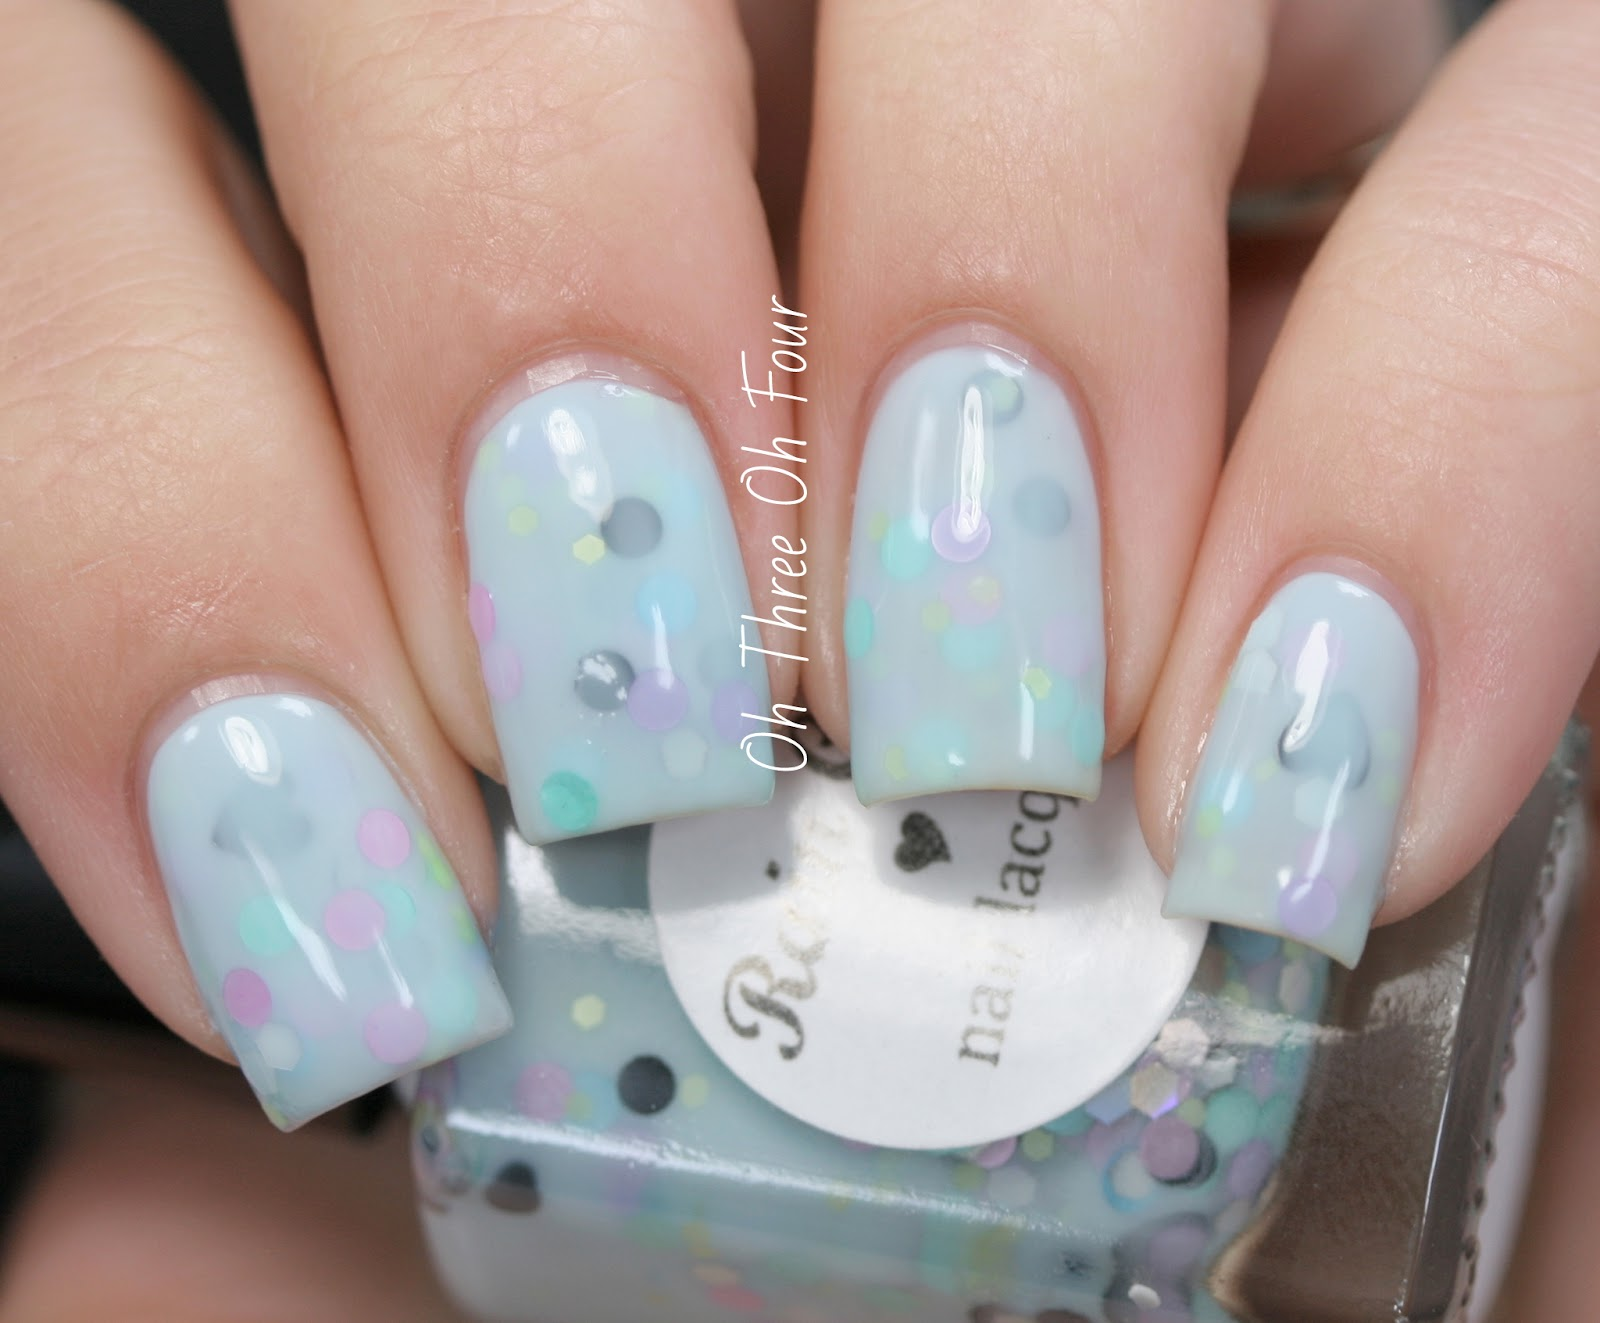 Rain City Lacquer Blackberry Macaron Swatch